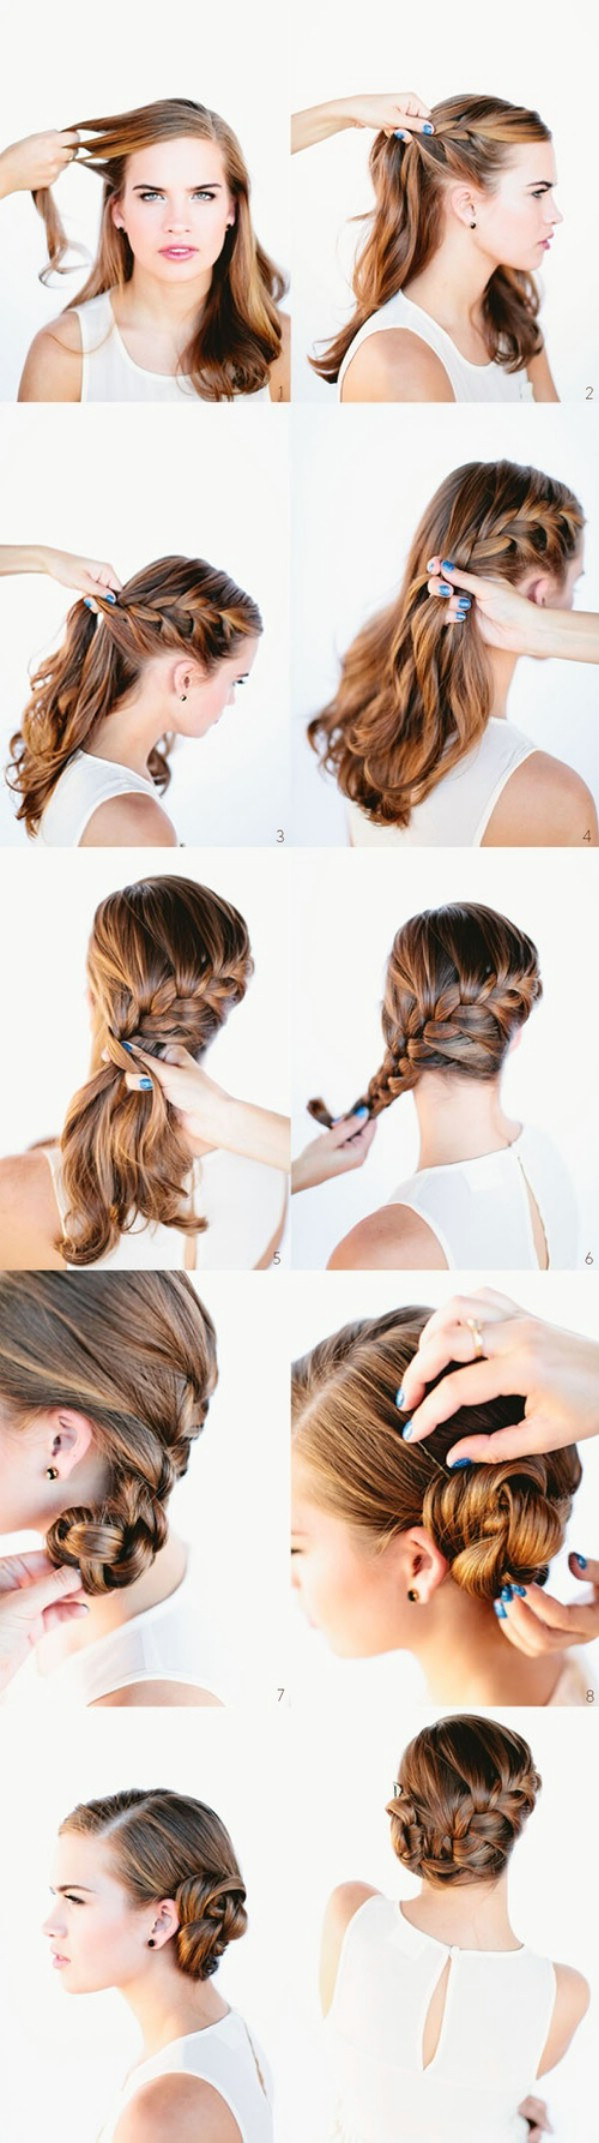 Double Ponytail Updo Hairstyle Step by Step Tutorial {8 ...